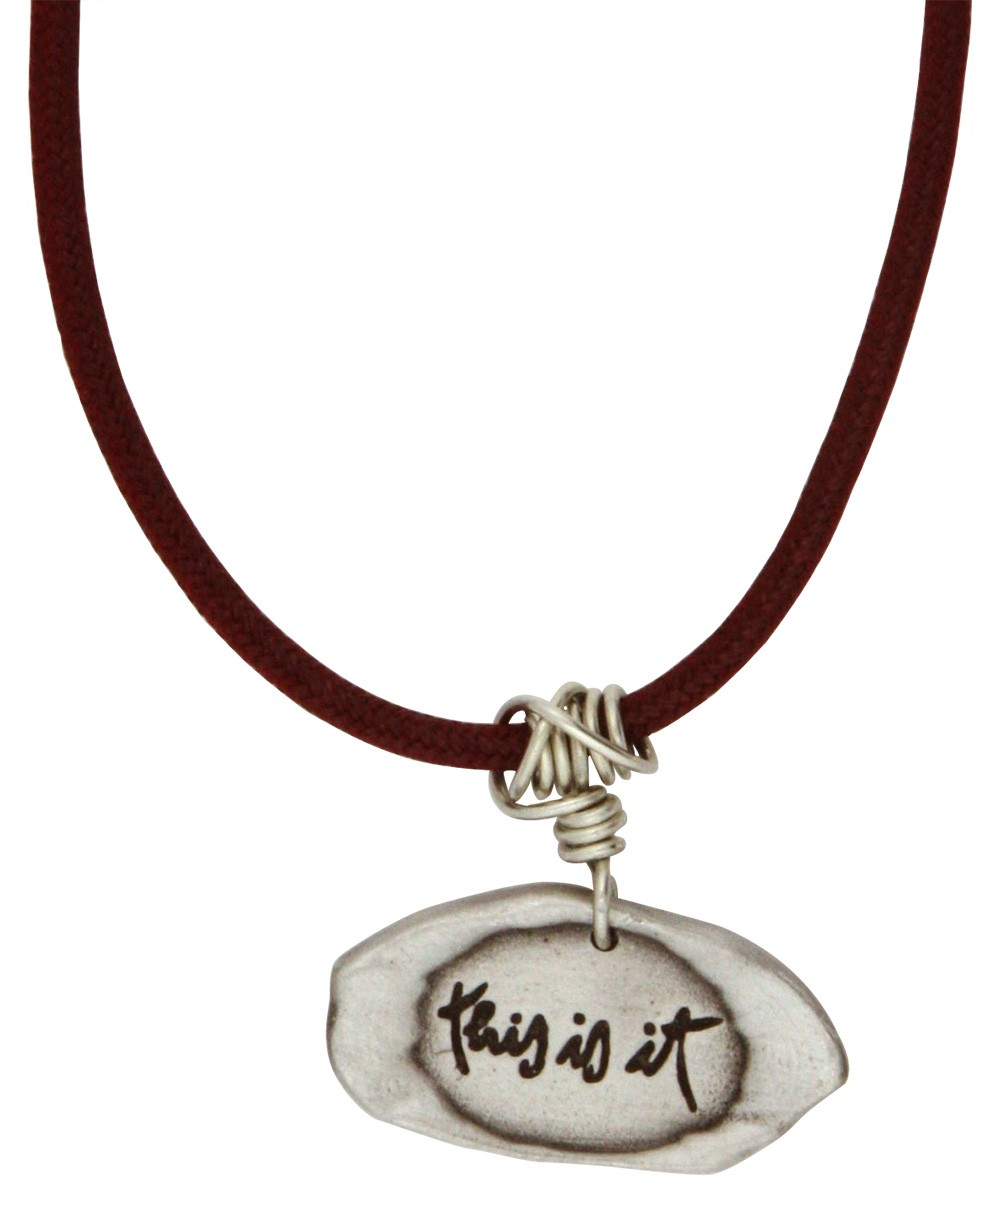 Thich Nhat Hanh This Is It Pendant Necklace